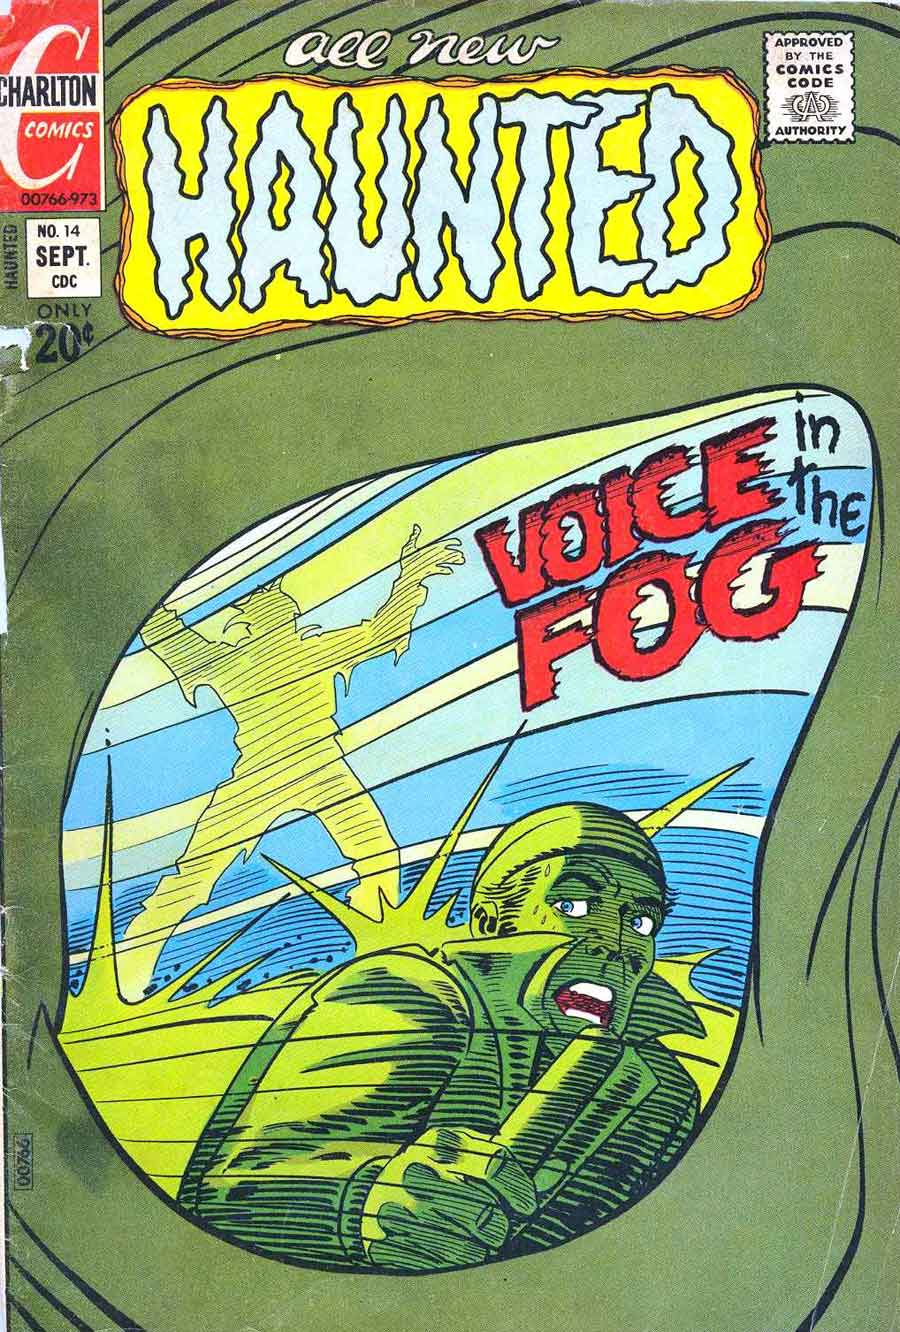 Haunted #14 charlton 1970s bronze age horror comic book cover art by Steve Ditko